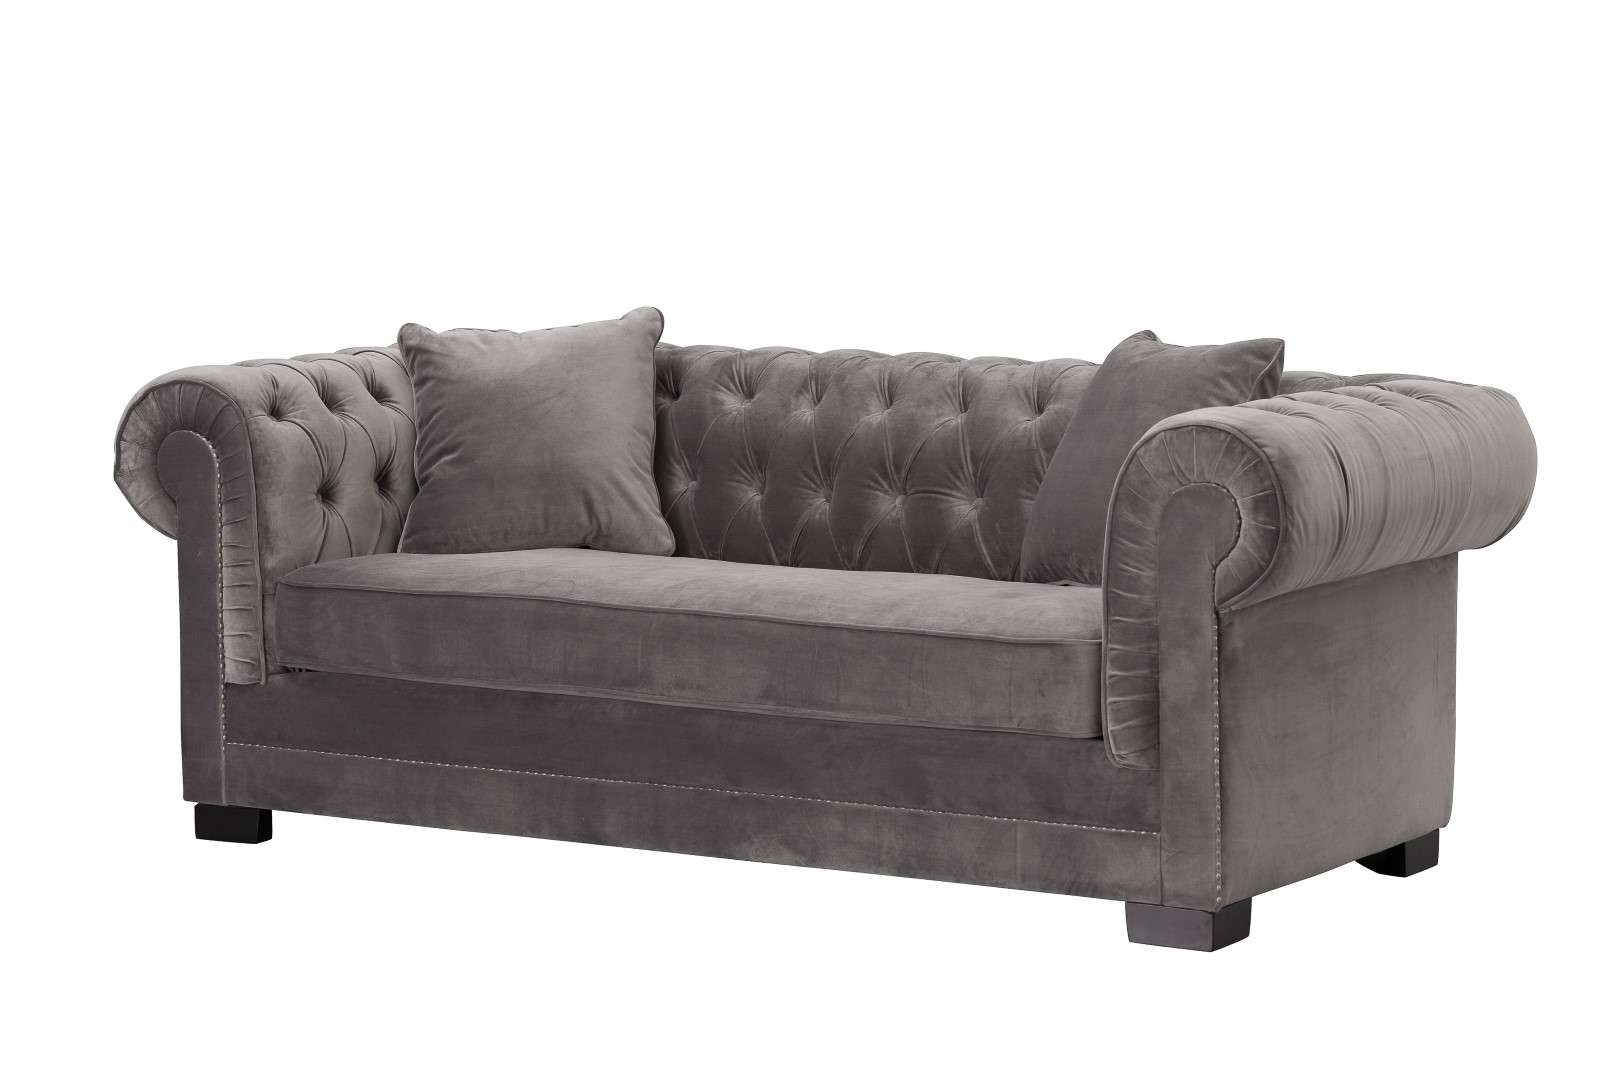 Dekoria Sofa Chesterfield Classic Velvet Dark Grey 3os.